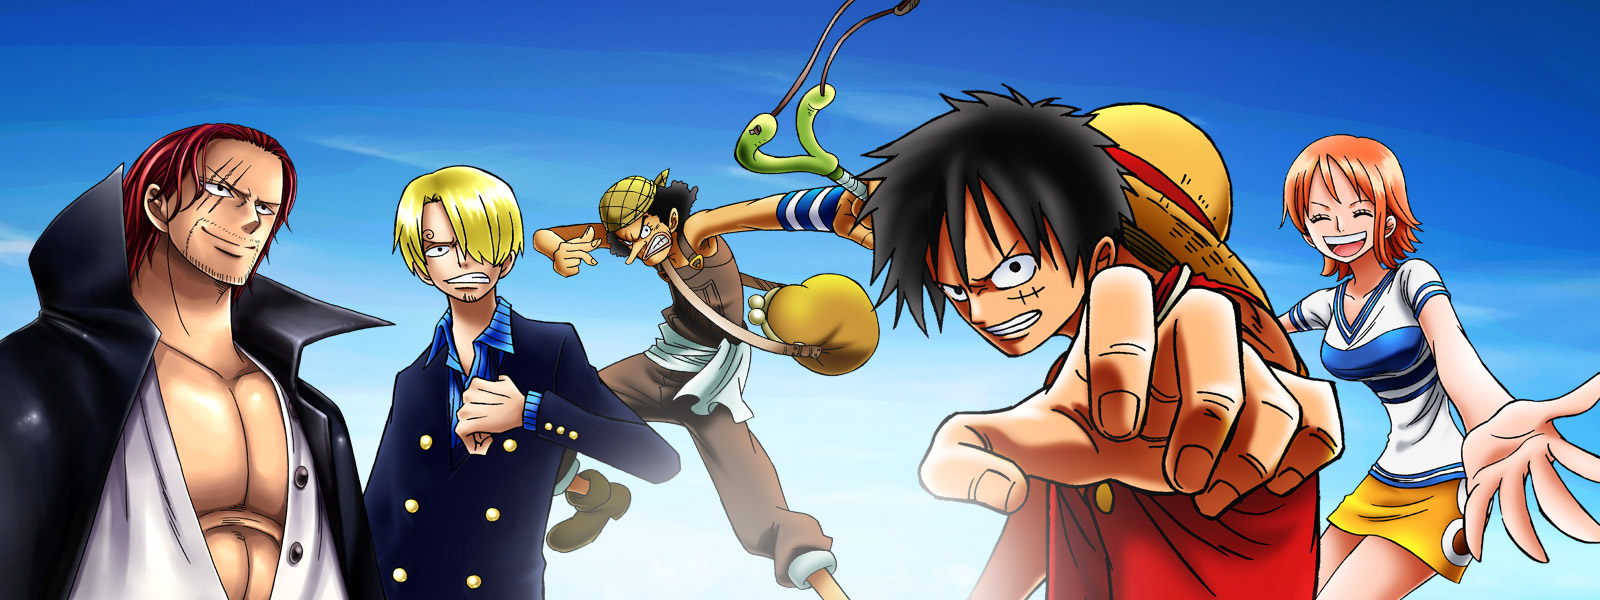 One Piece Special Episode